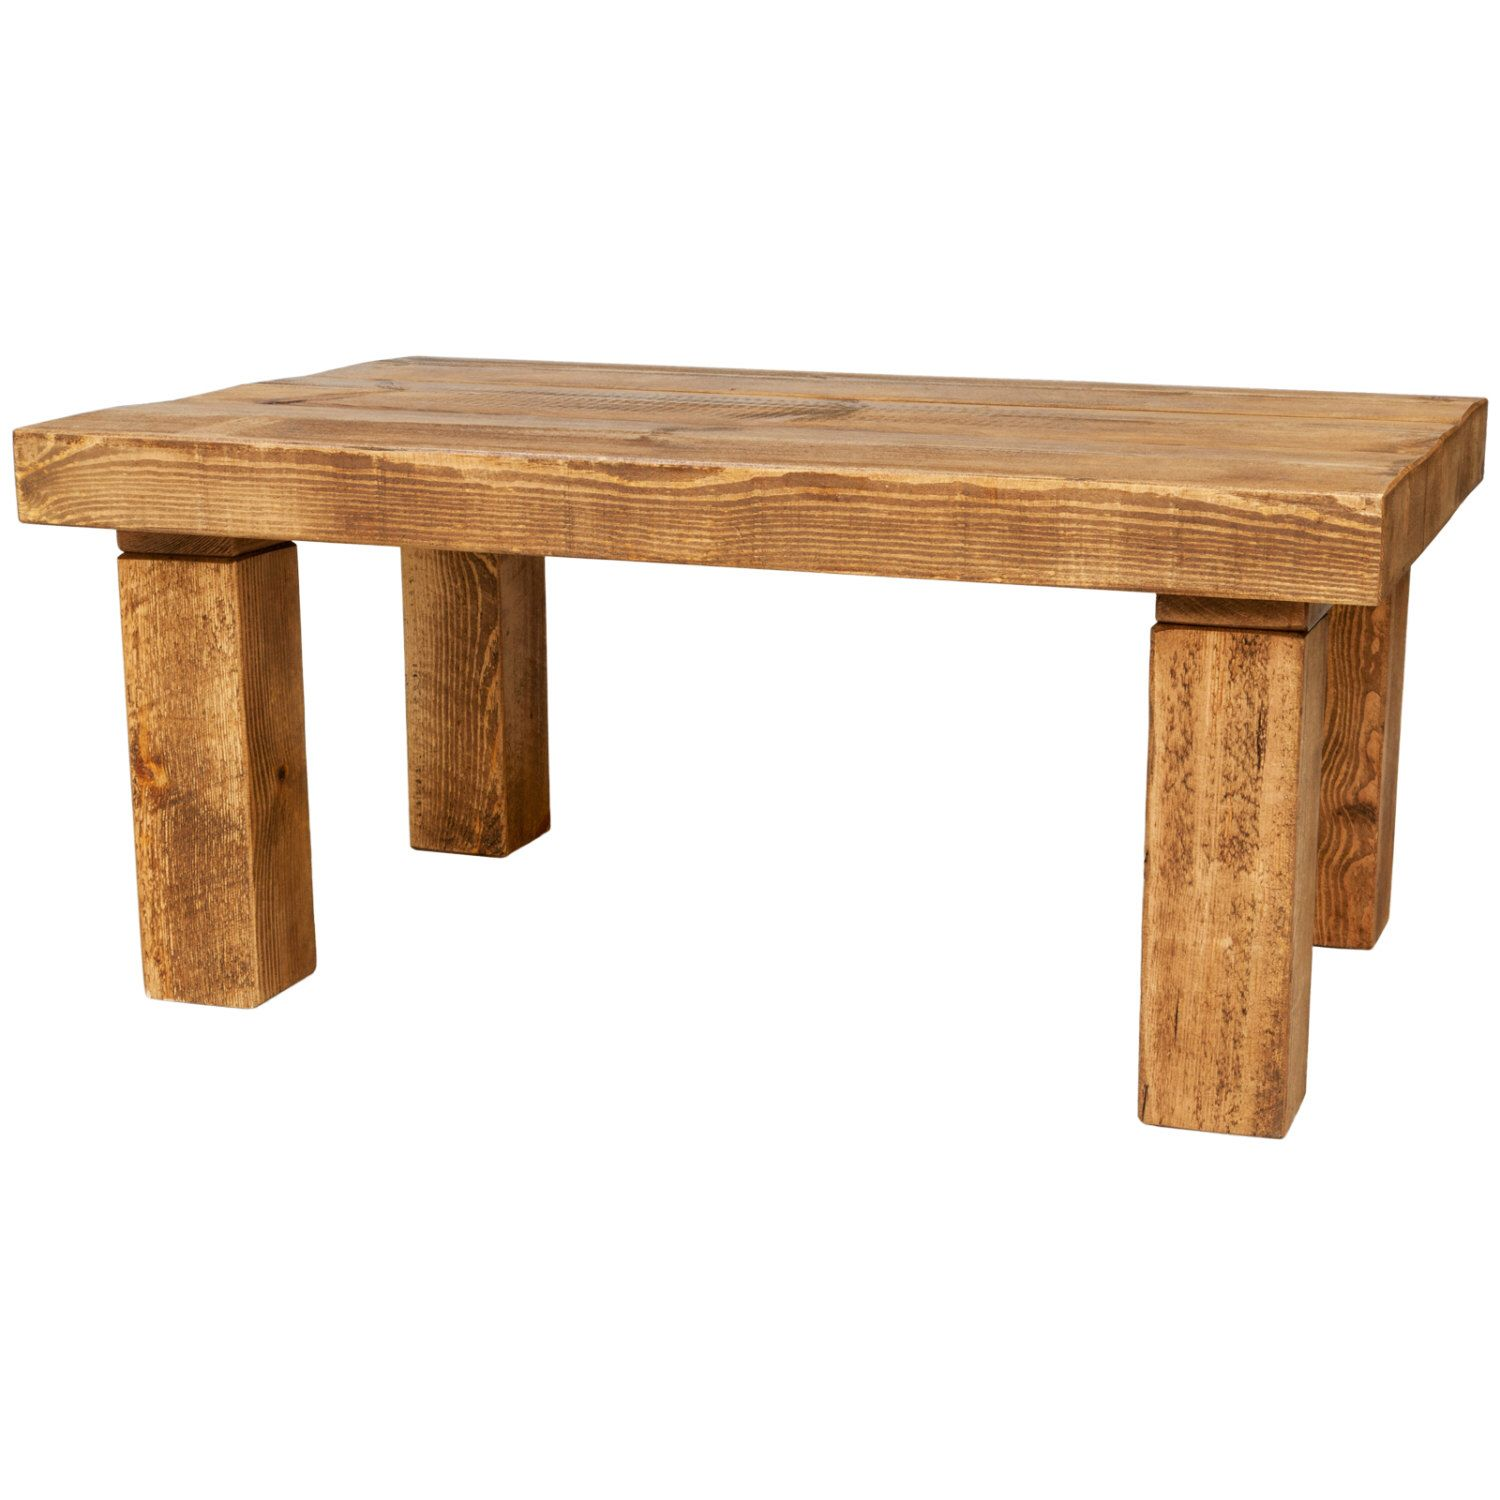 Handmade Chunky Wooden Coffee Table With A Choice Of Different Rustic Wax Finish Colours And Sizes 3 Inch Top 4 Leg Coffee Table Wood Solid Wood Coffee Table Wooden Coffee Table